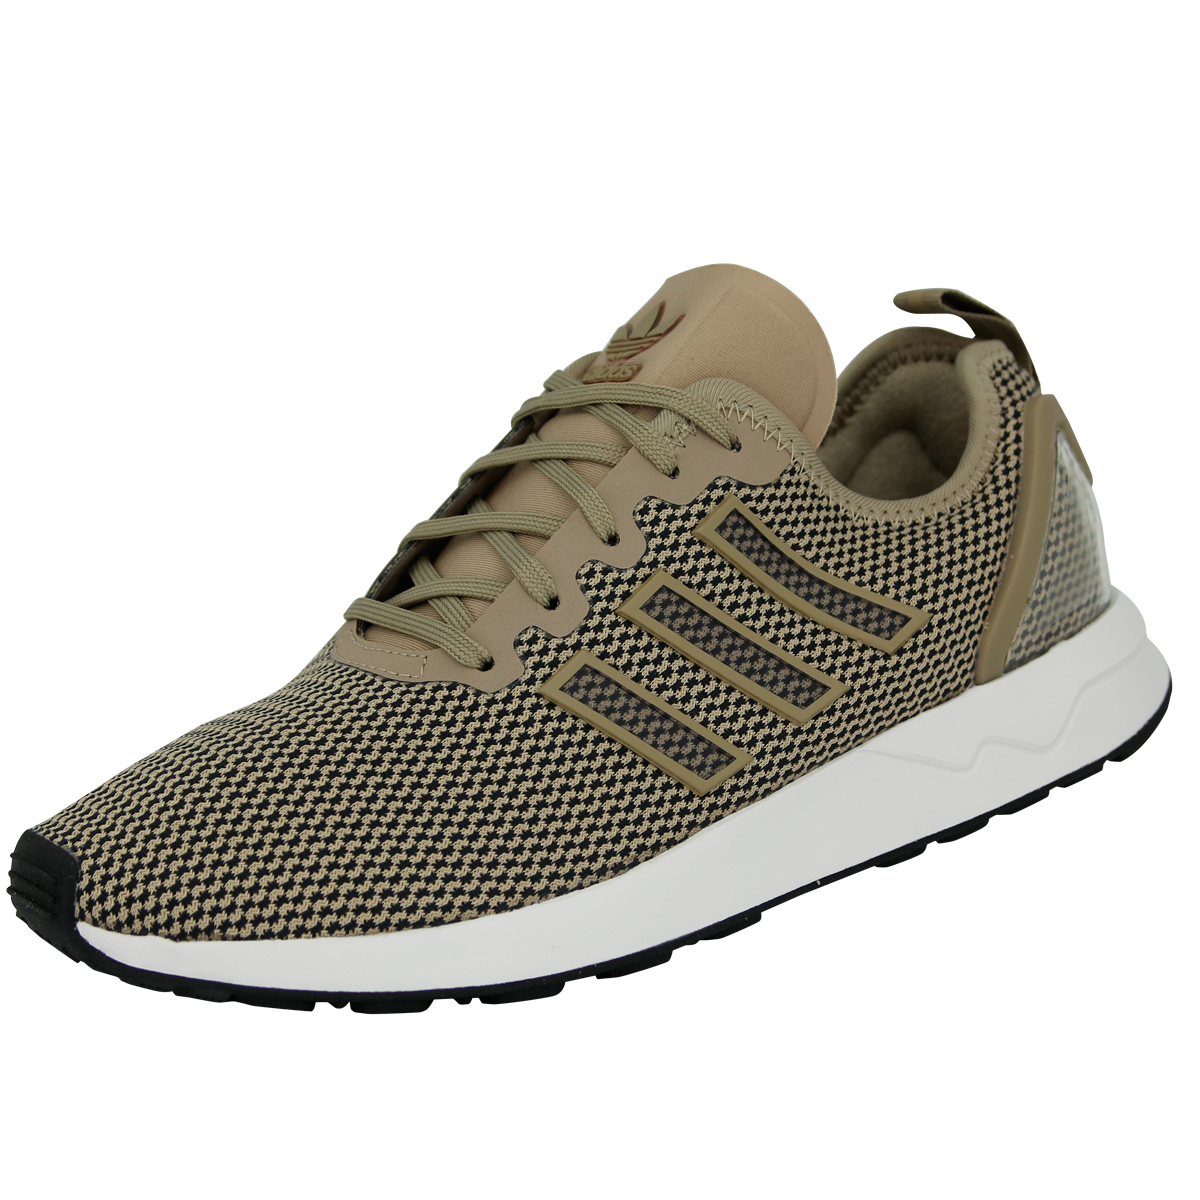 Adidas Originals ZX FLUX ADV shoes Fashion Sneakers Woman Brown